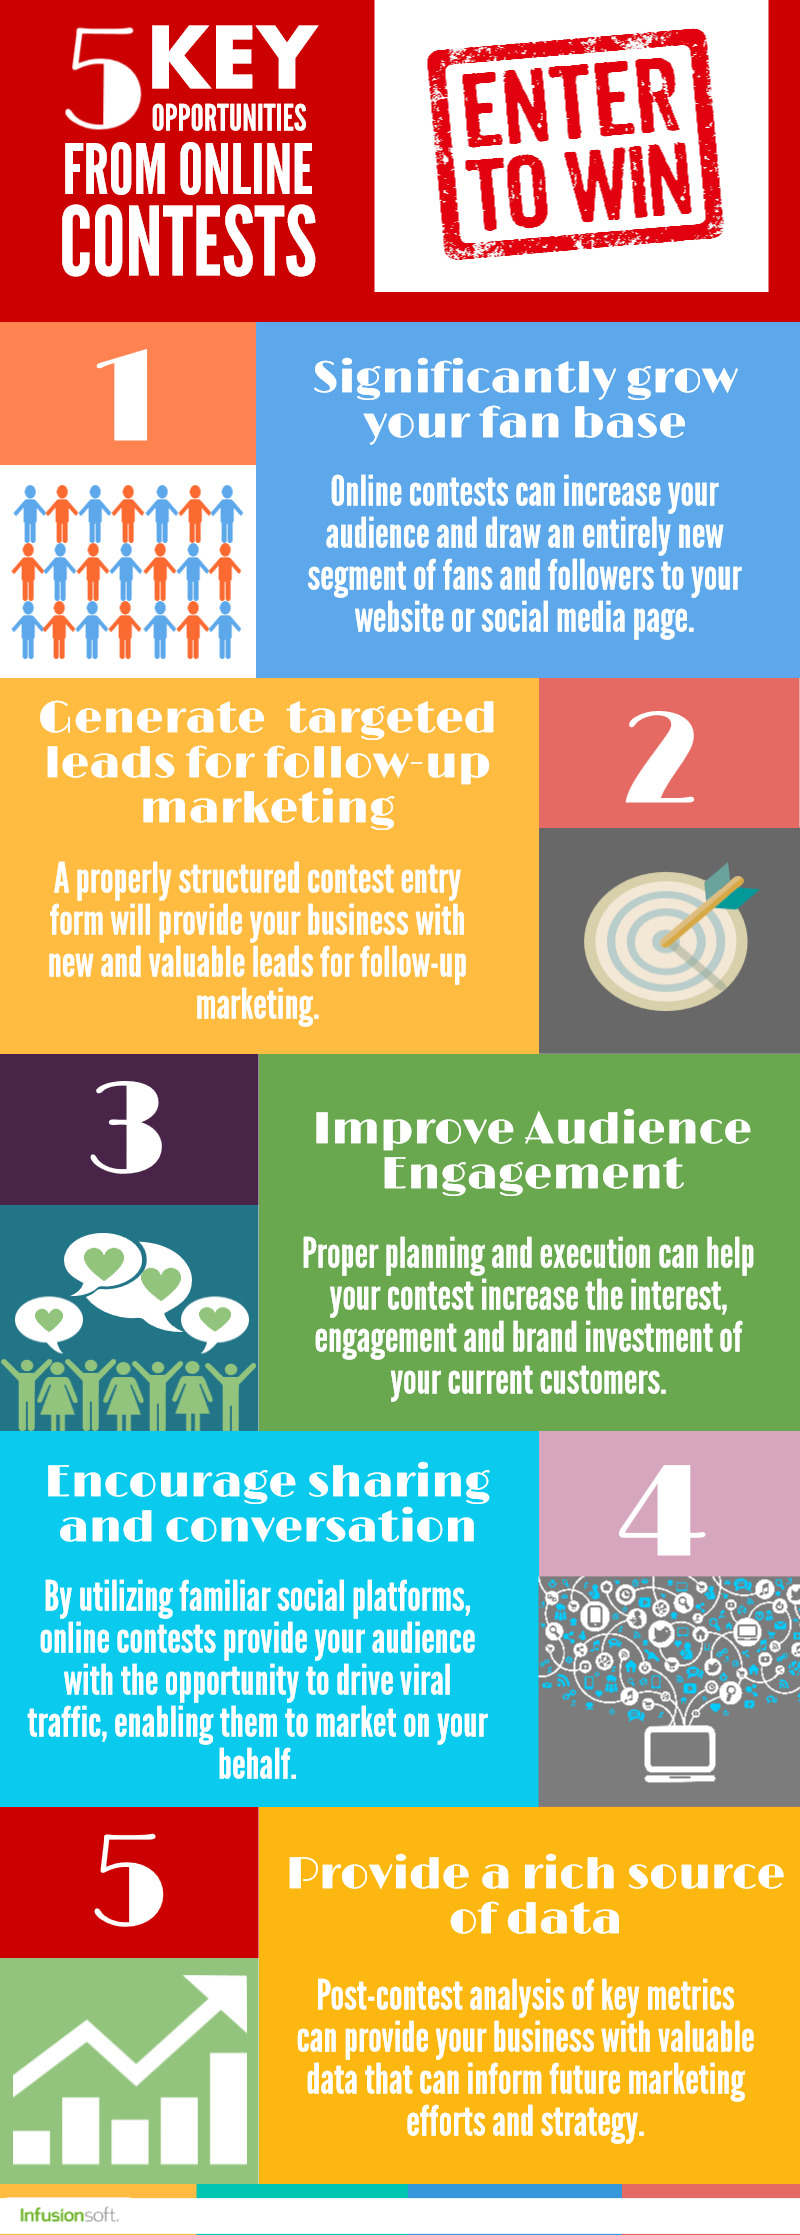 5-key-opportunities-from-online-contests-by-Infusionsoft.jpg